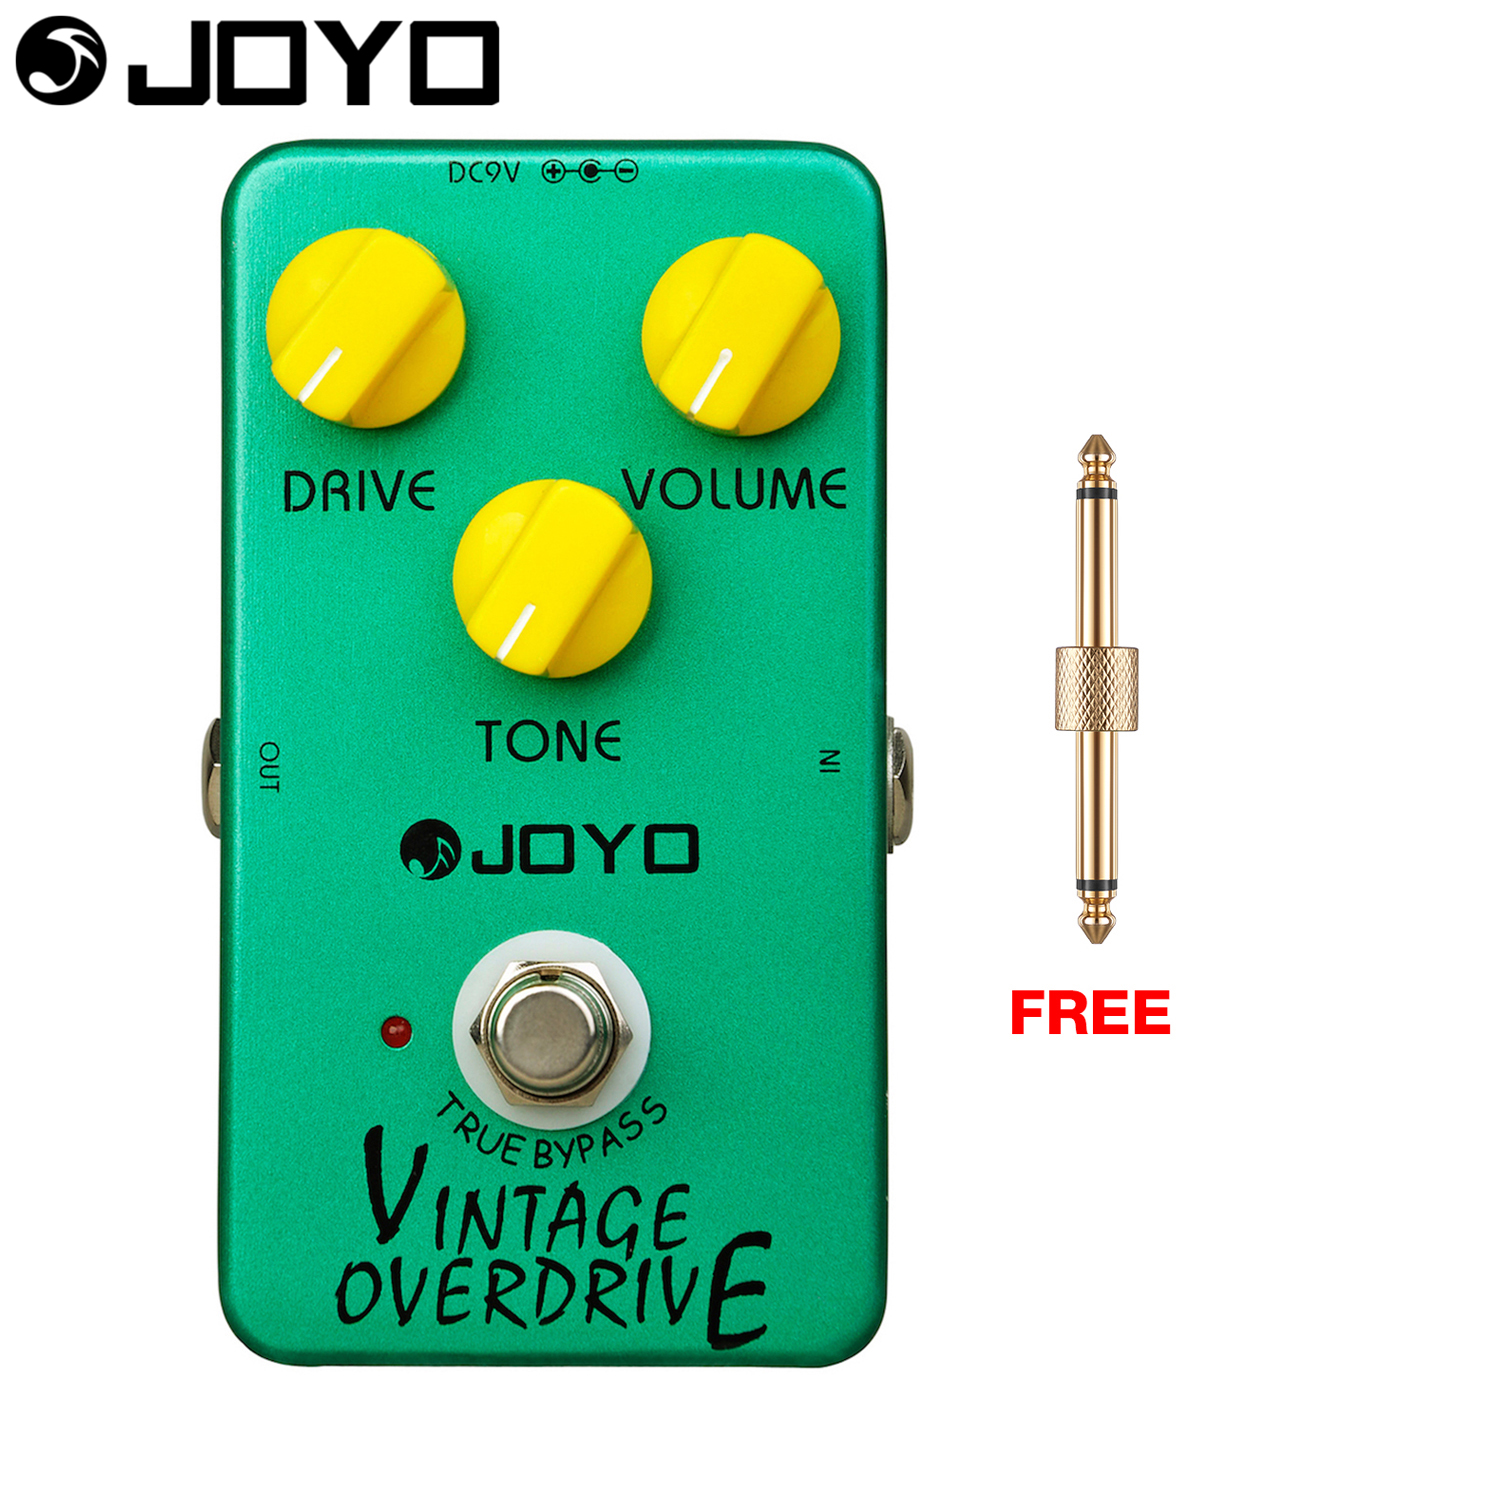 Joyo Vintage Overdrive Electric Guitar Effect Pedal True Bypass Classic Tubescreamer JF-01 with Free Connector aroma adr 3 dumbler amp simulator guitar effect pedal mini single pedals with true bypass aluminium alloy guitar accessories